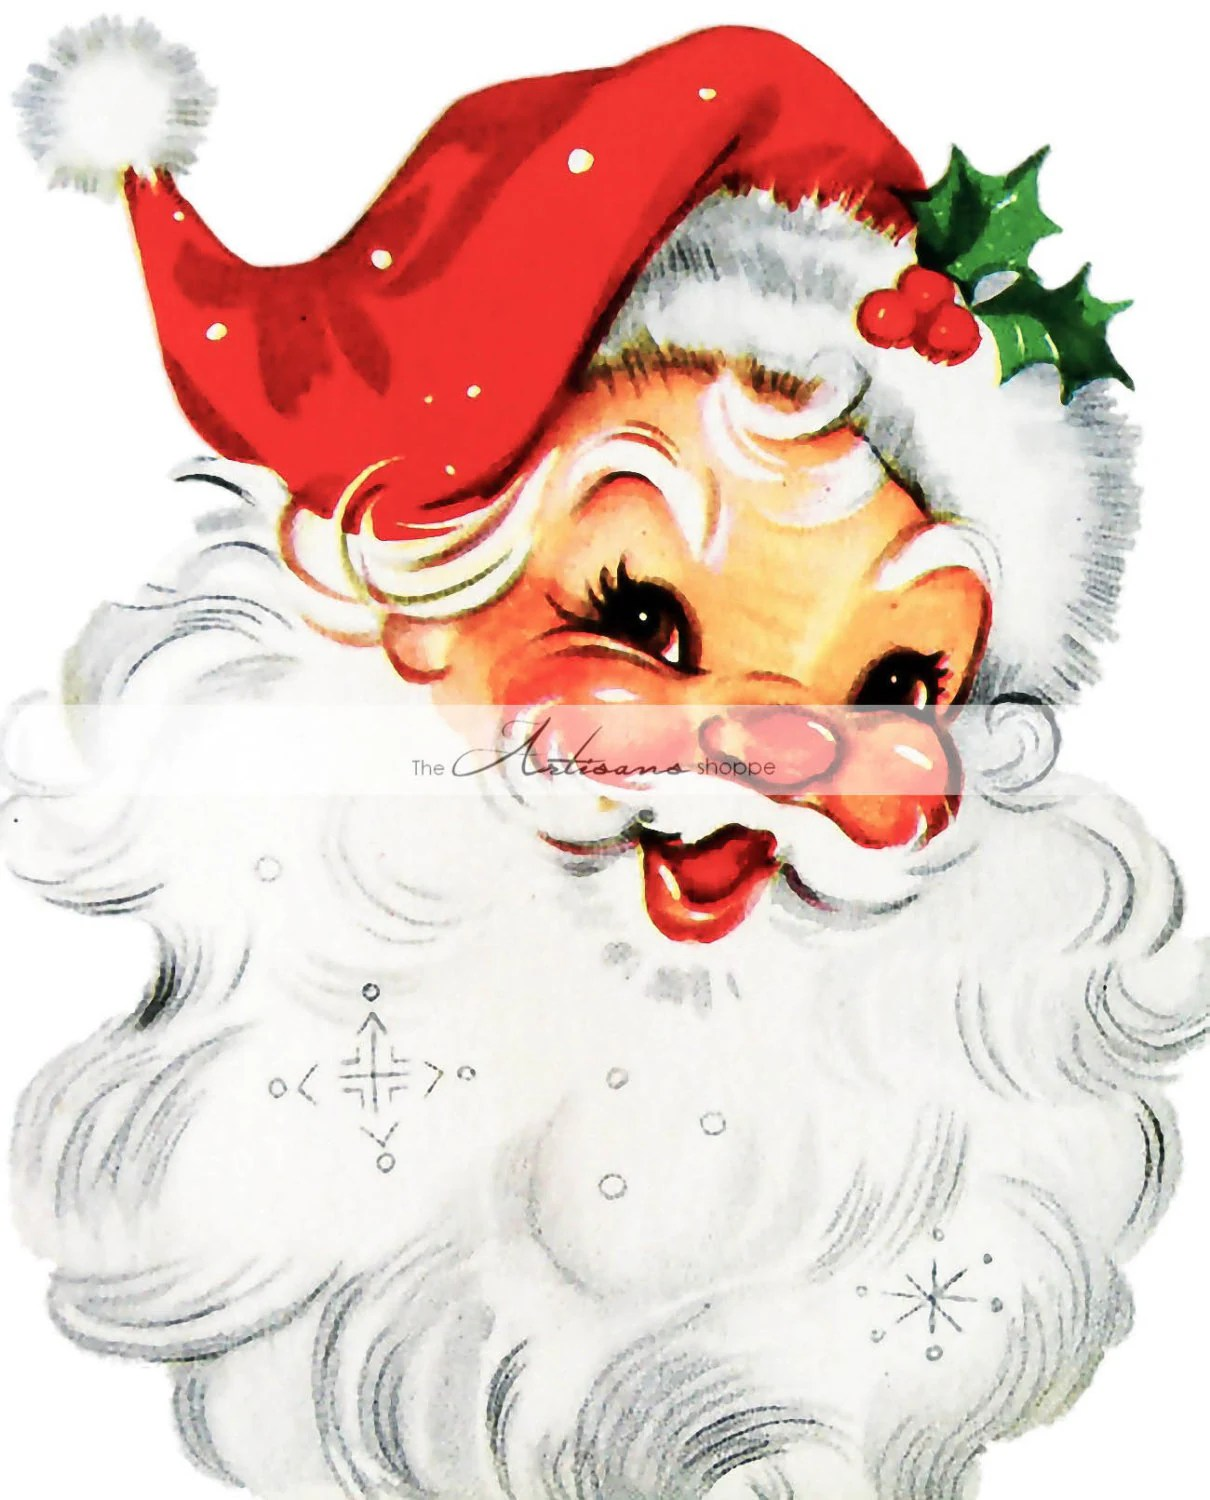 Vintage Jolly Santa Claus Image Digital Download Printable